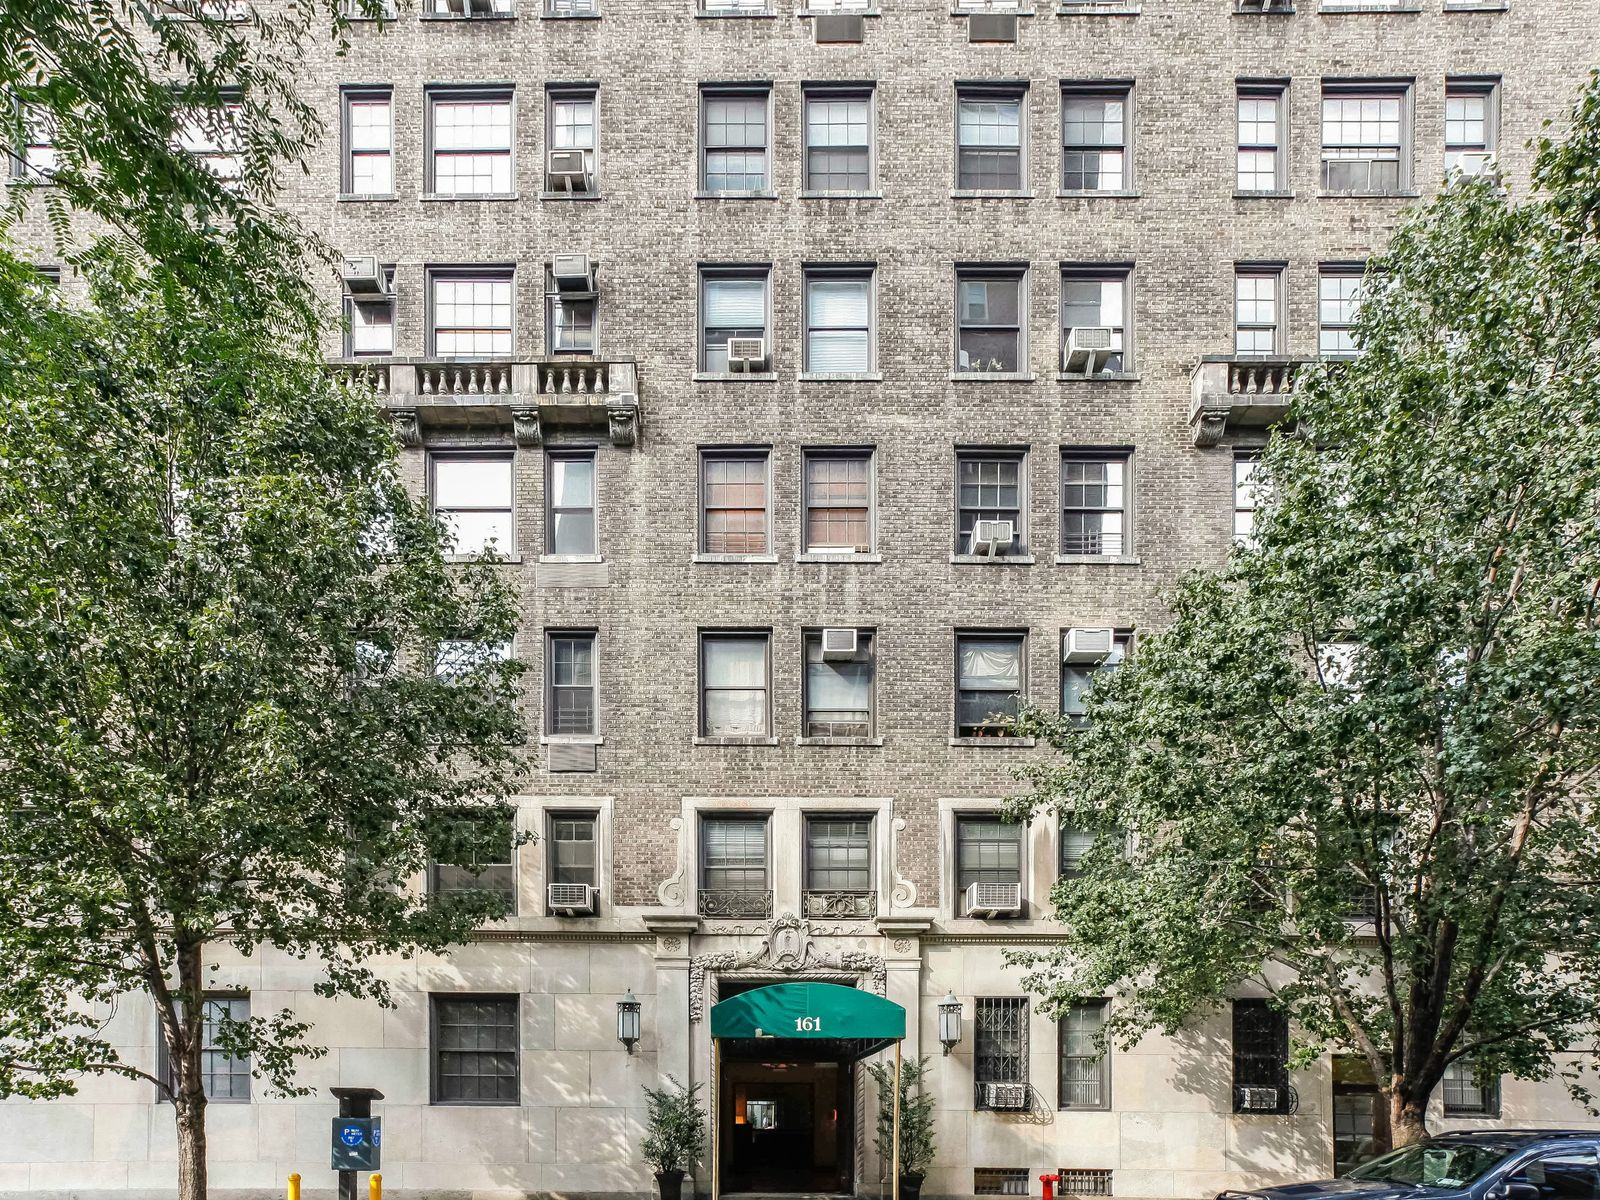 161 West 75th Street – Over The Top 6, New York NY Cooperative - New York City Real Estate